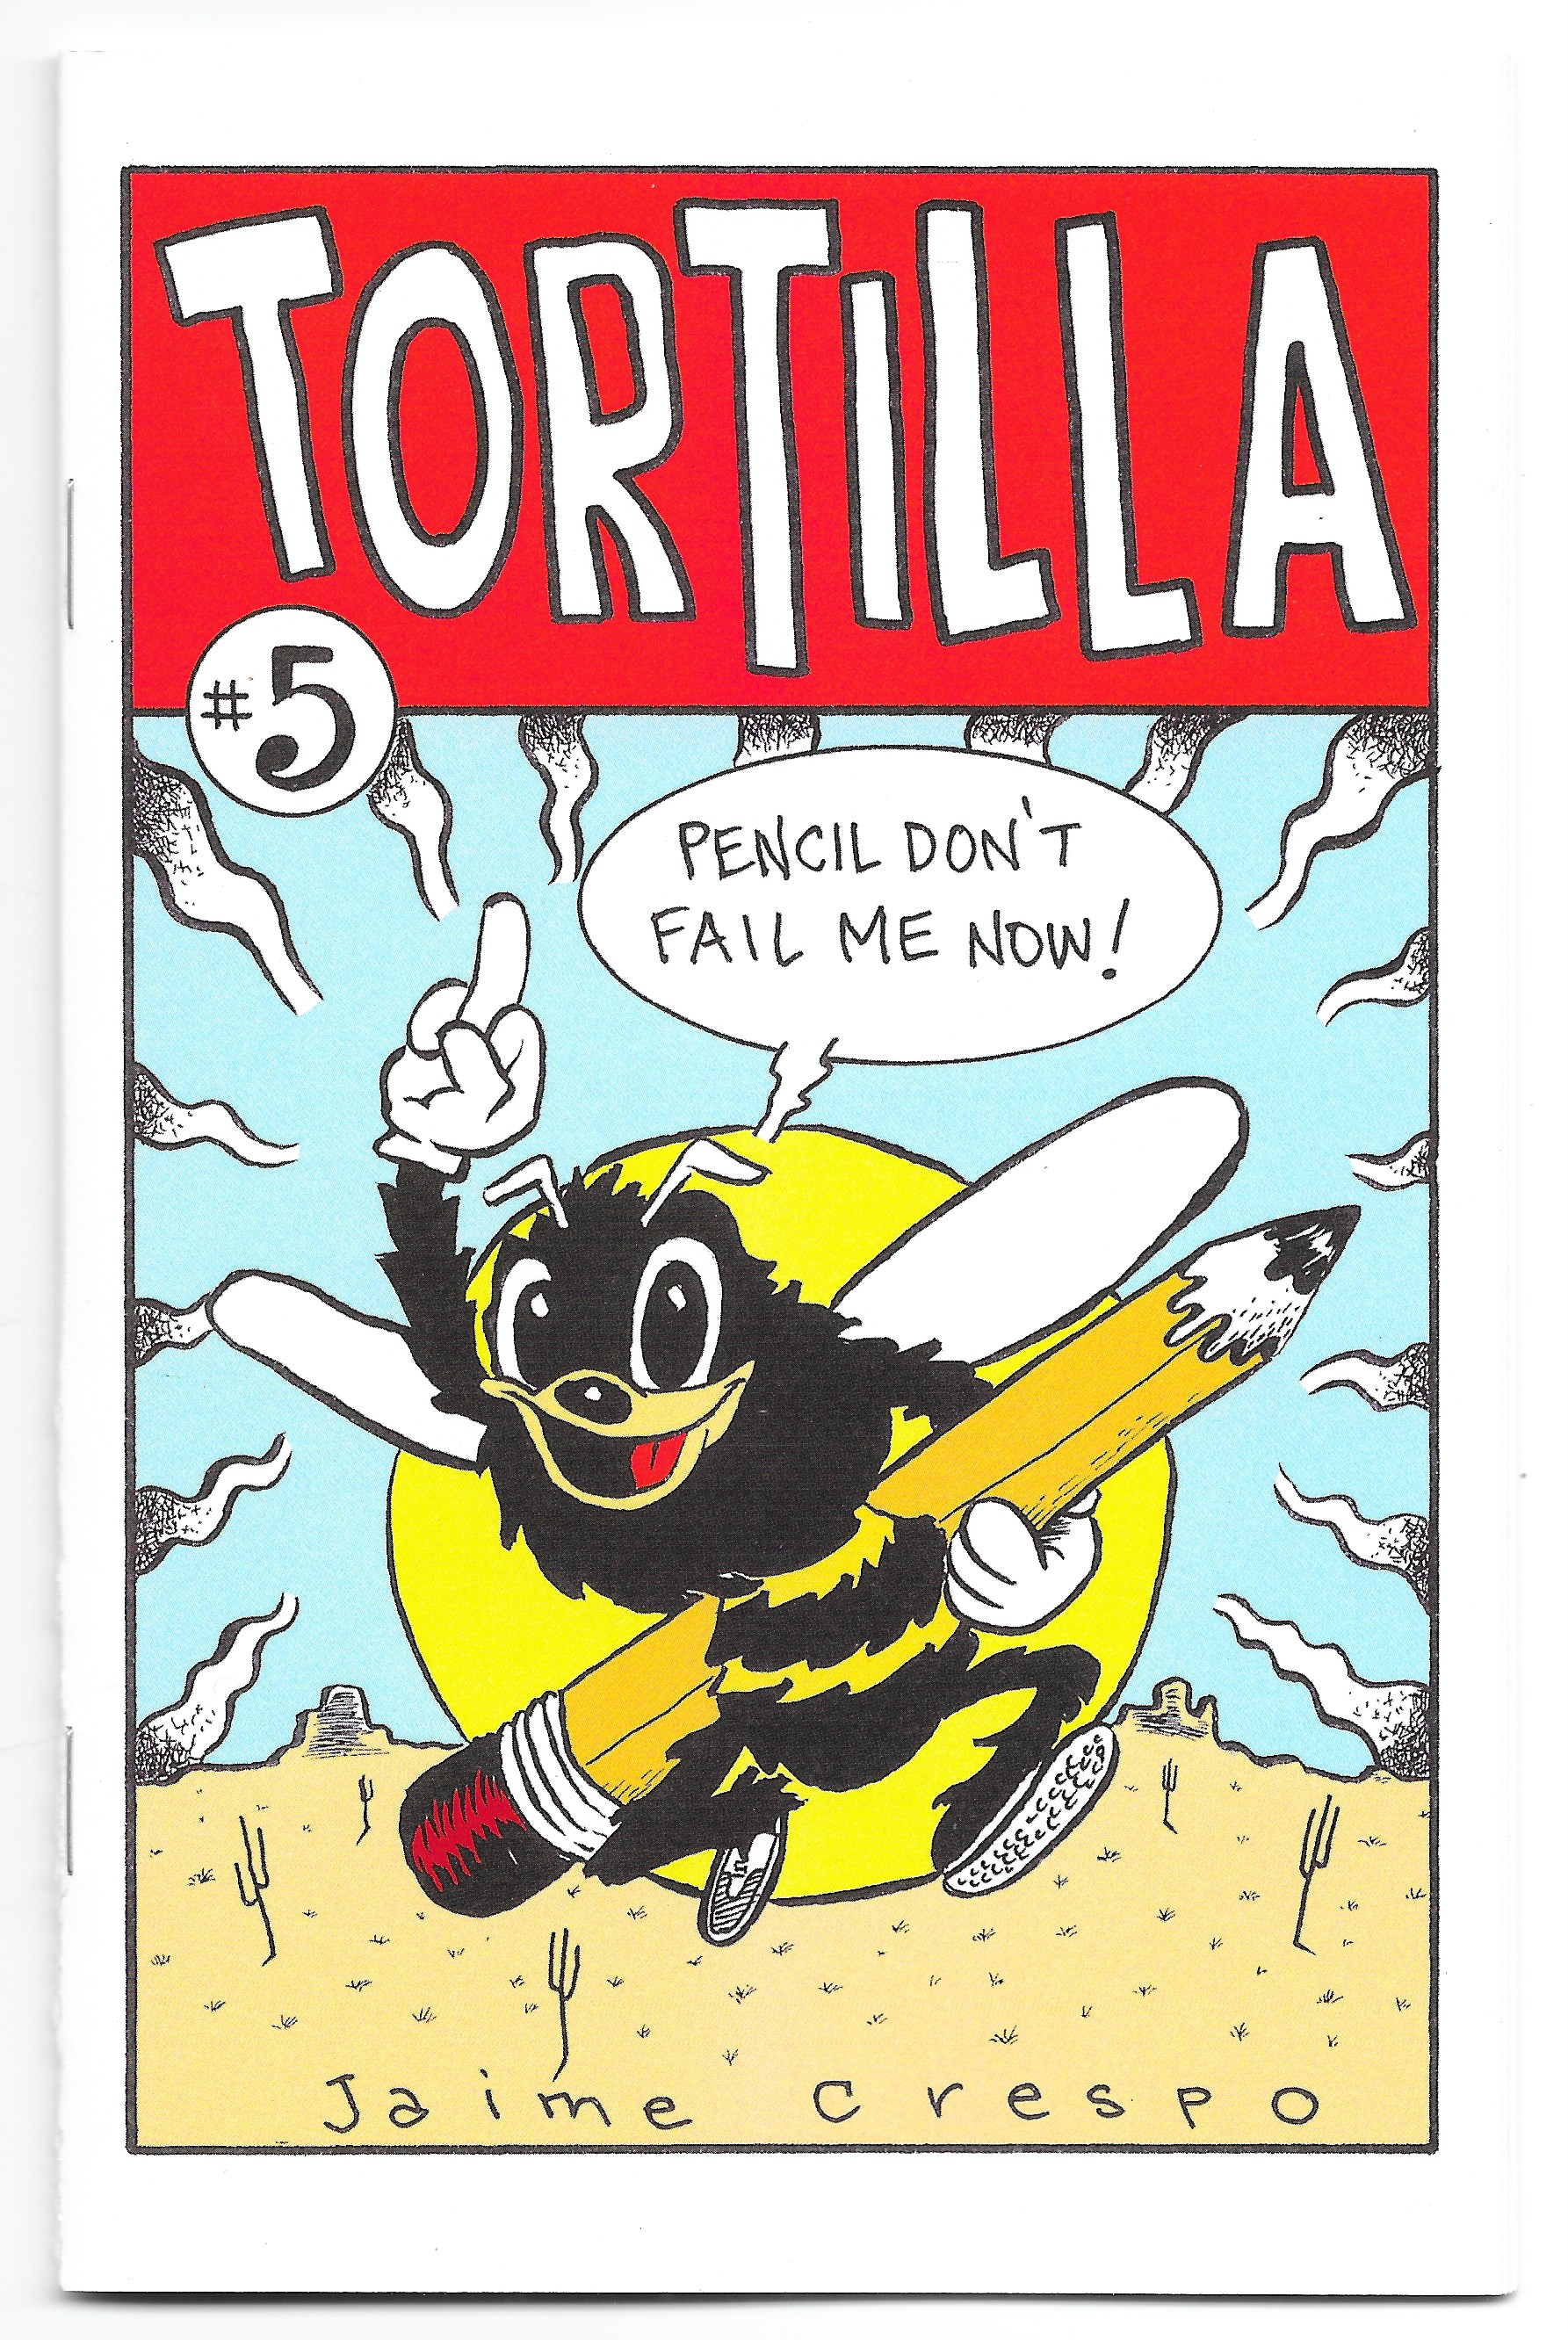 """Tortilla #5 - The """"Funny Issue"""" as I've been calling this one with a color cover and B&W pages. Featuring four stories from dealing with a neighborhood bully to looking at what Jesus' teen years may have been like, plus a couple other stories. I had a ball doing this one. Digest size with card stock cover. 24 pages. $4.50 (ppd)."""